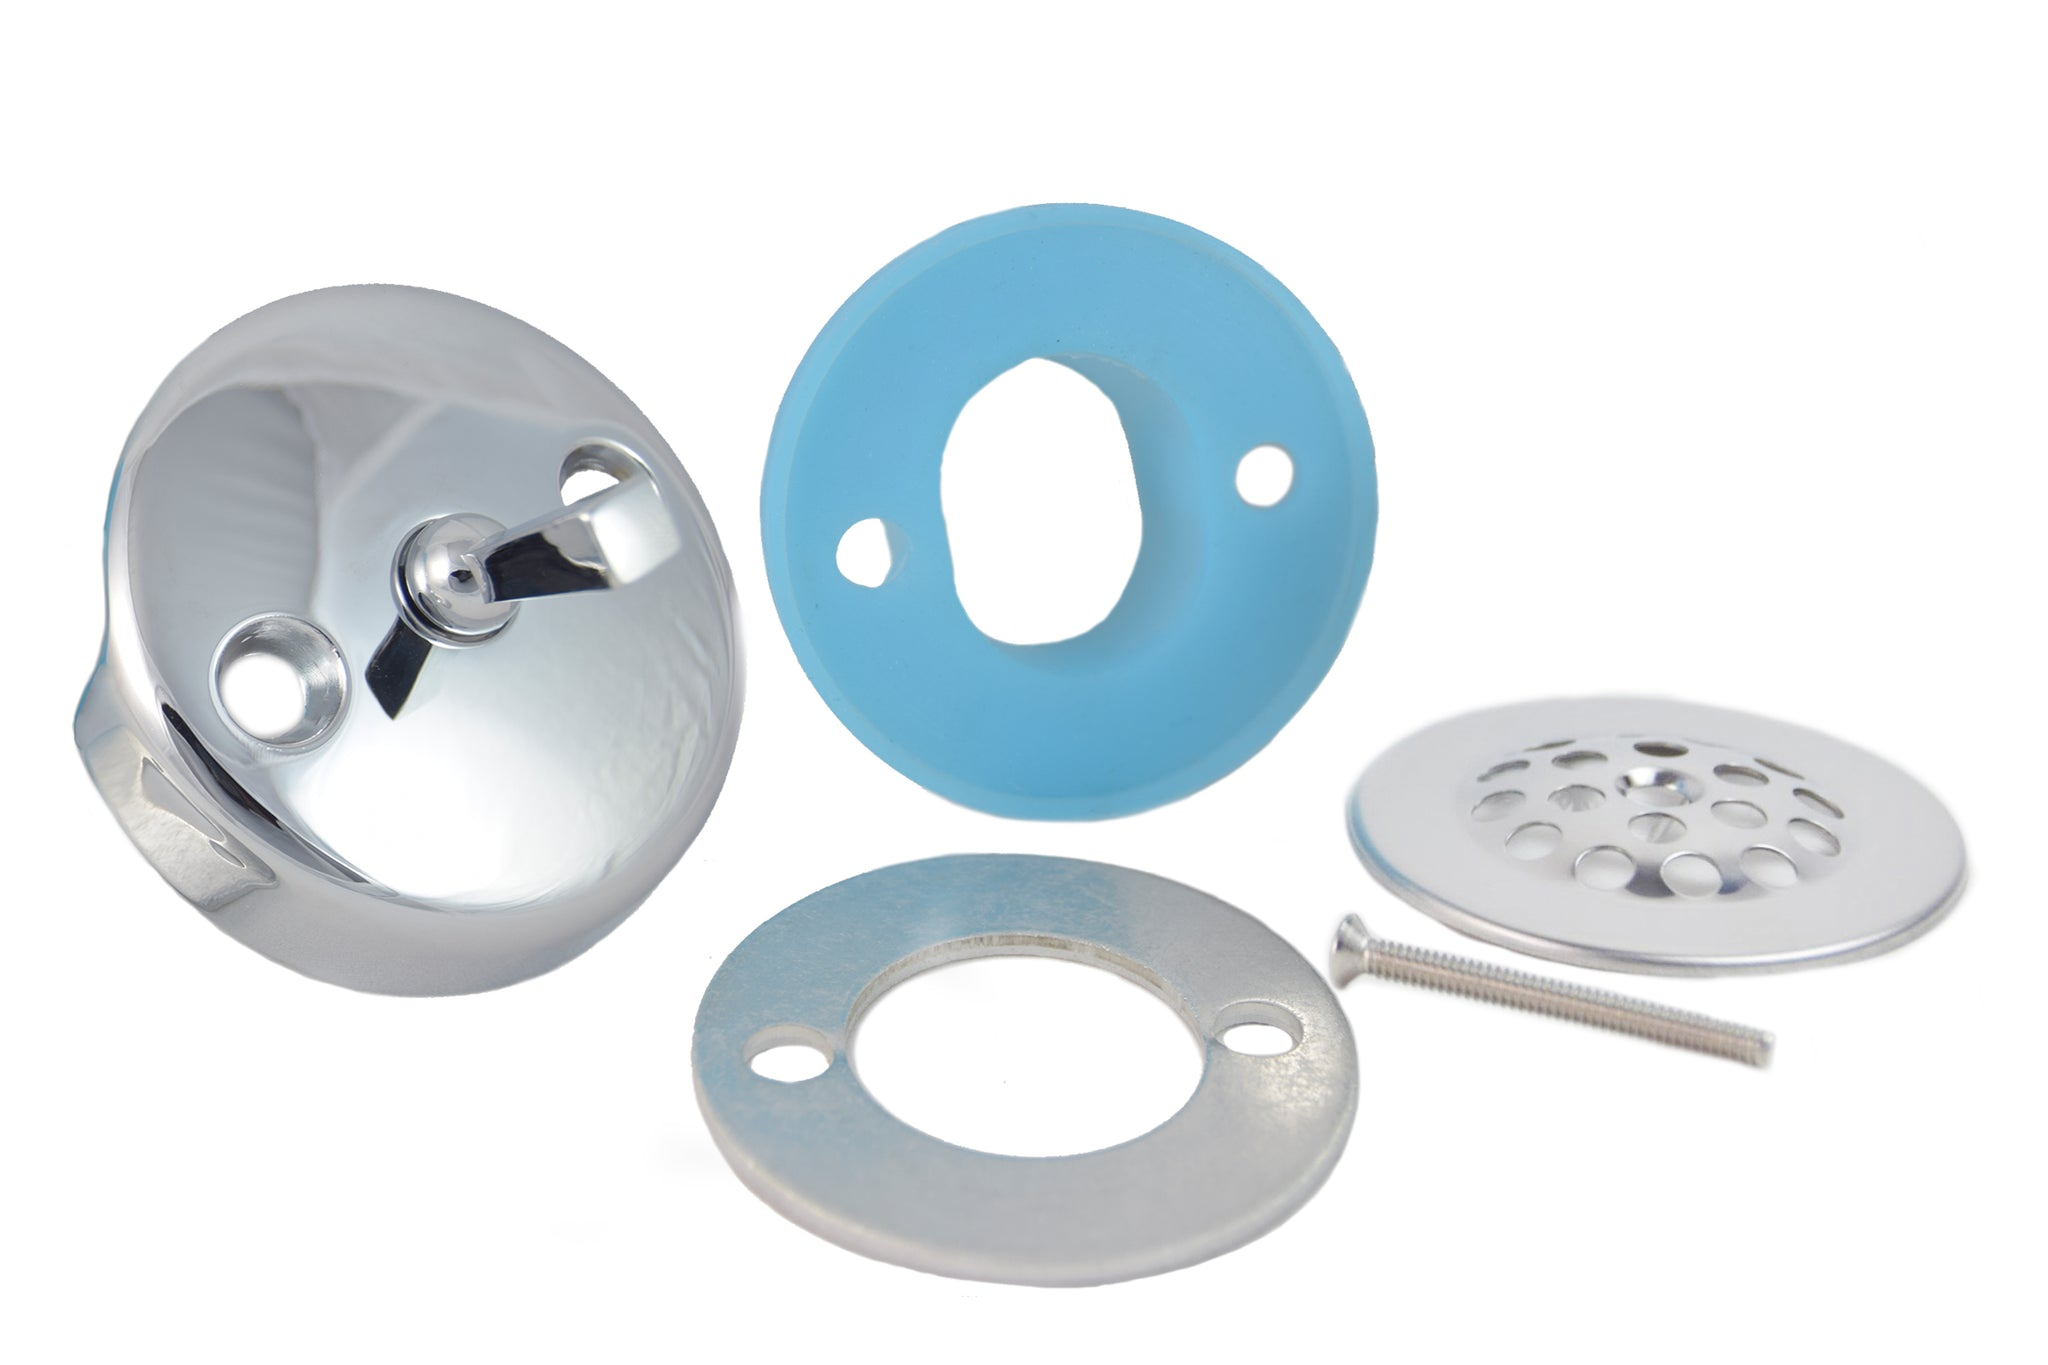 Overflow Gasket, Trip Lever Cover, and Strainer Dome Cover Kit